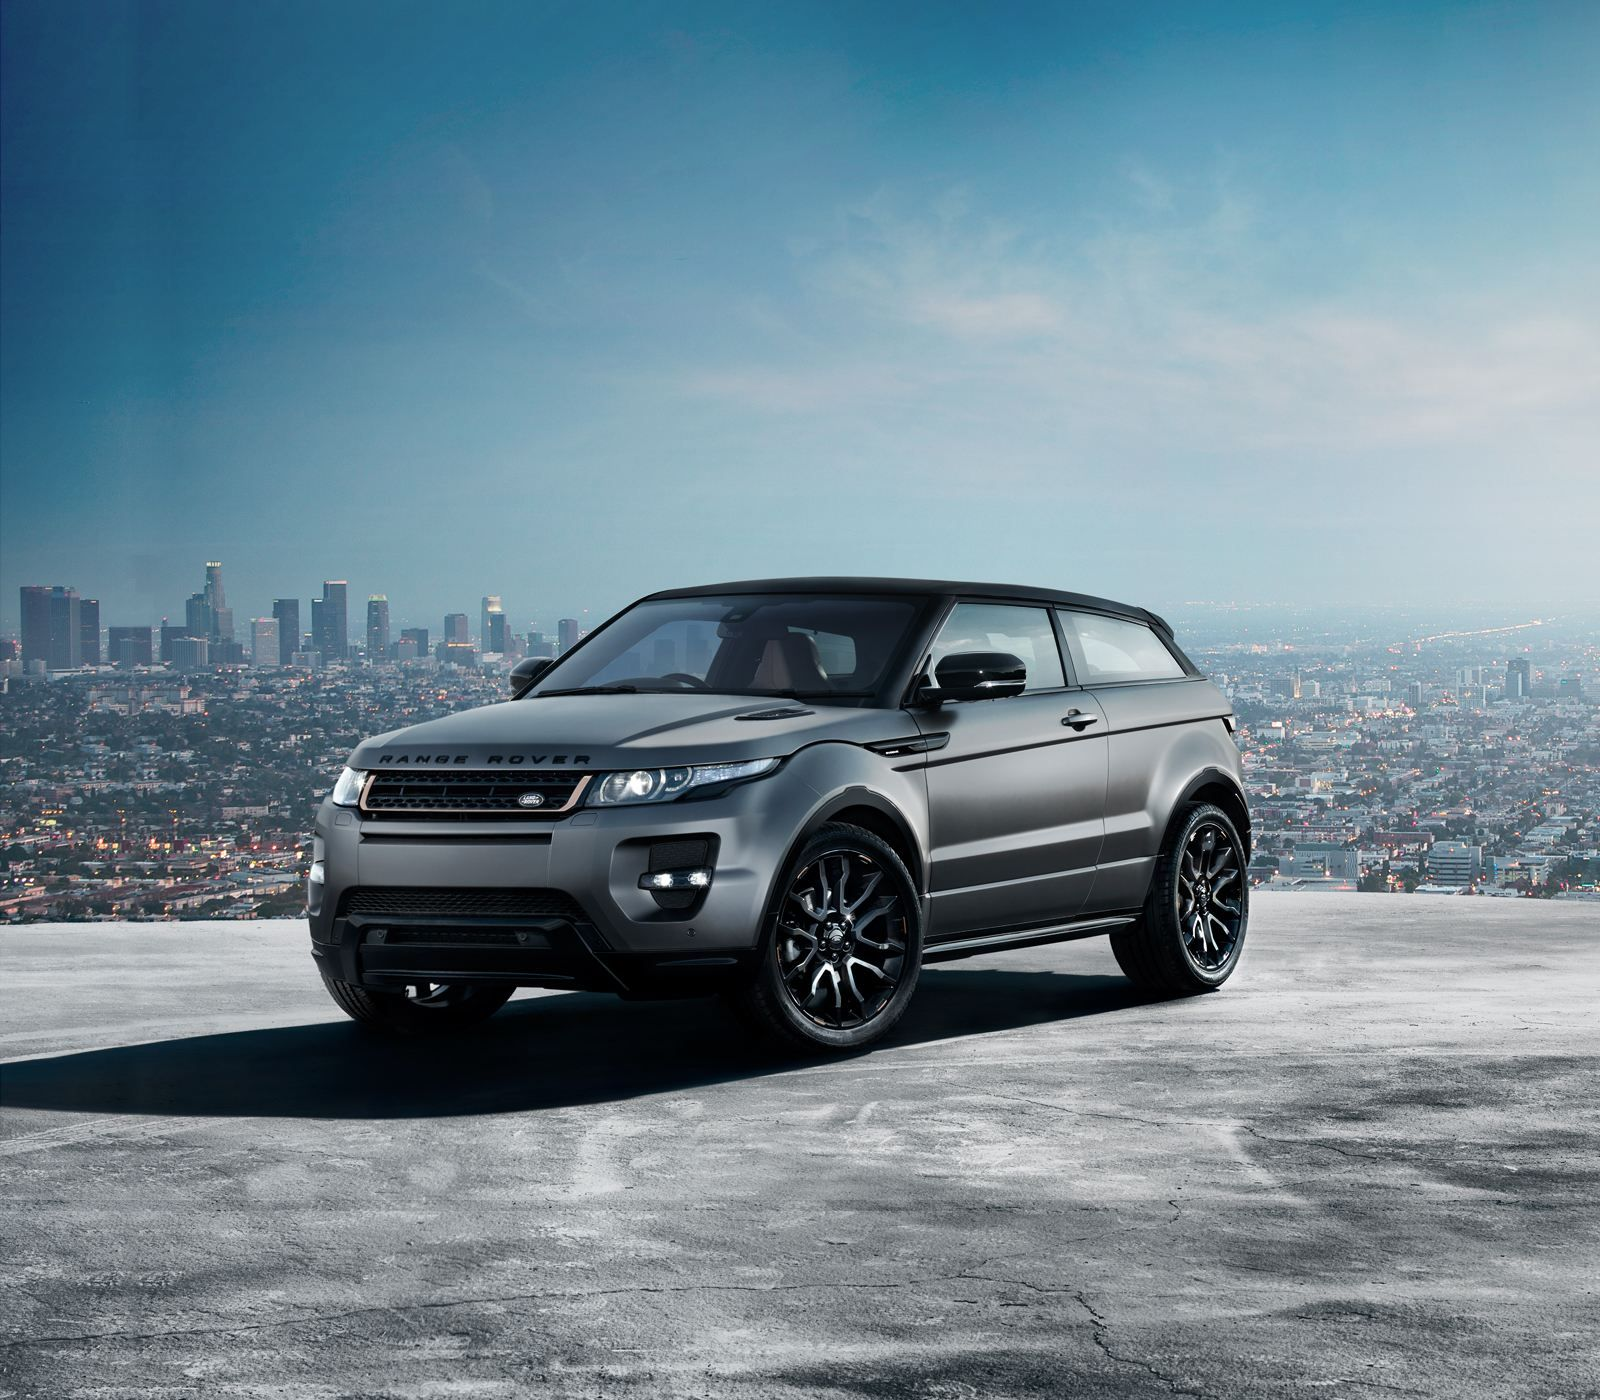 Used Land Rover Range Rover Evoque Suv 2 0 Td4 Hse Dynamic: Victoria Beckham X Range Rover Evoque Special Edition